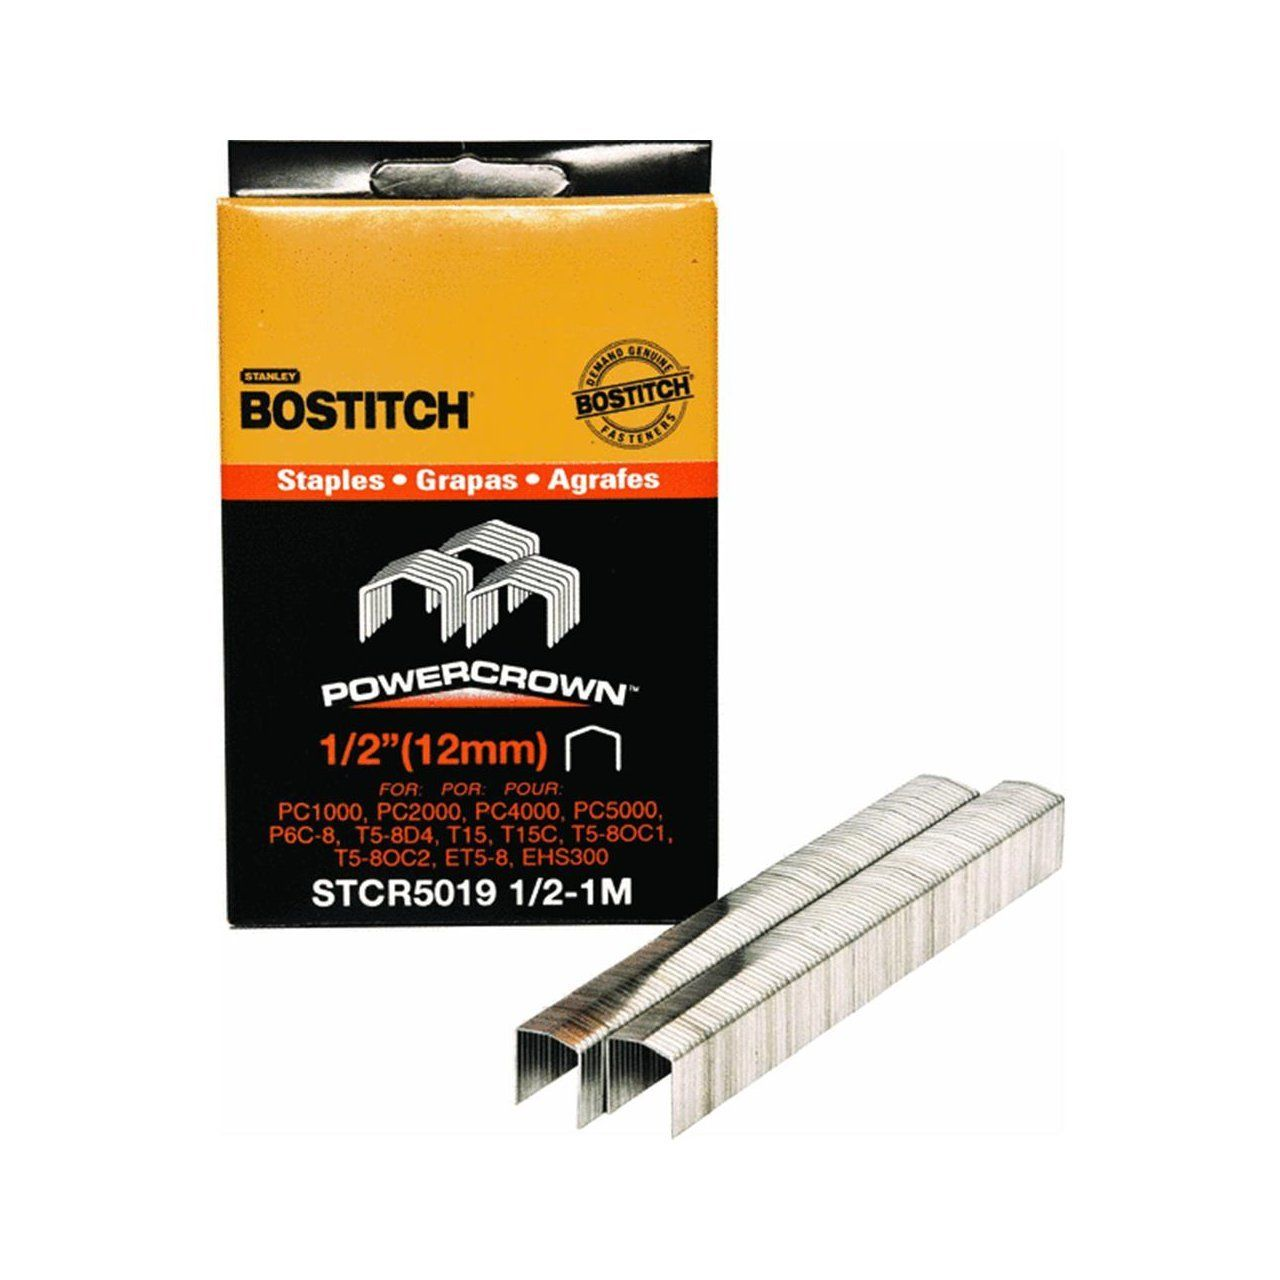 Stanley Bostitch Stcr50191 2 1m Power Crown Staples Pack Of 5 Be Sure To Check Out This Awesome Product Air Tools Heavy Duty Staples